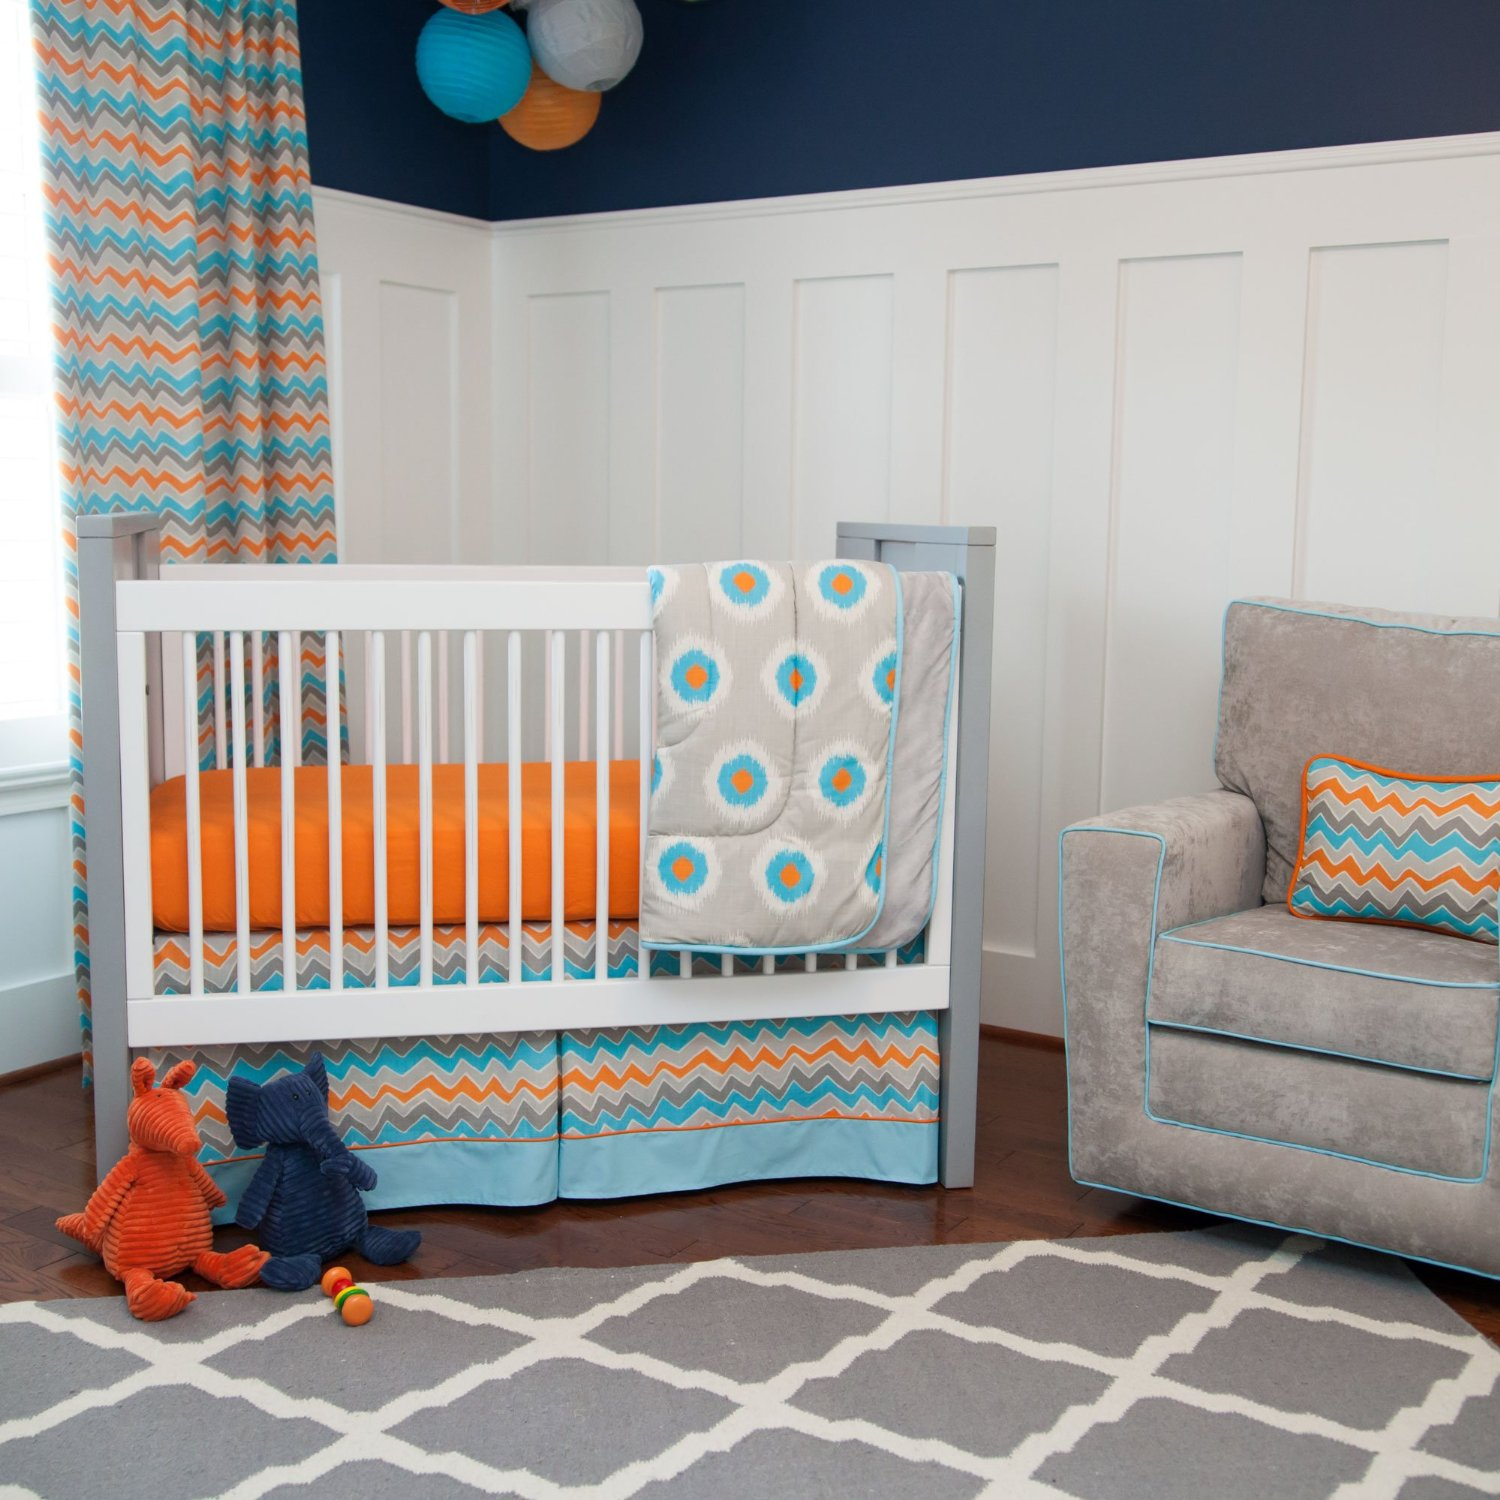 baby crib sheets orange navy crib bedding nursery bedding baby  - total fab blue and orange nursery crib sets bedding for baby